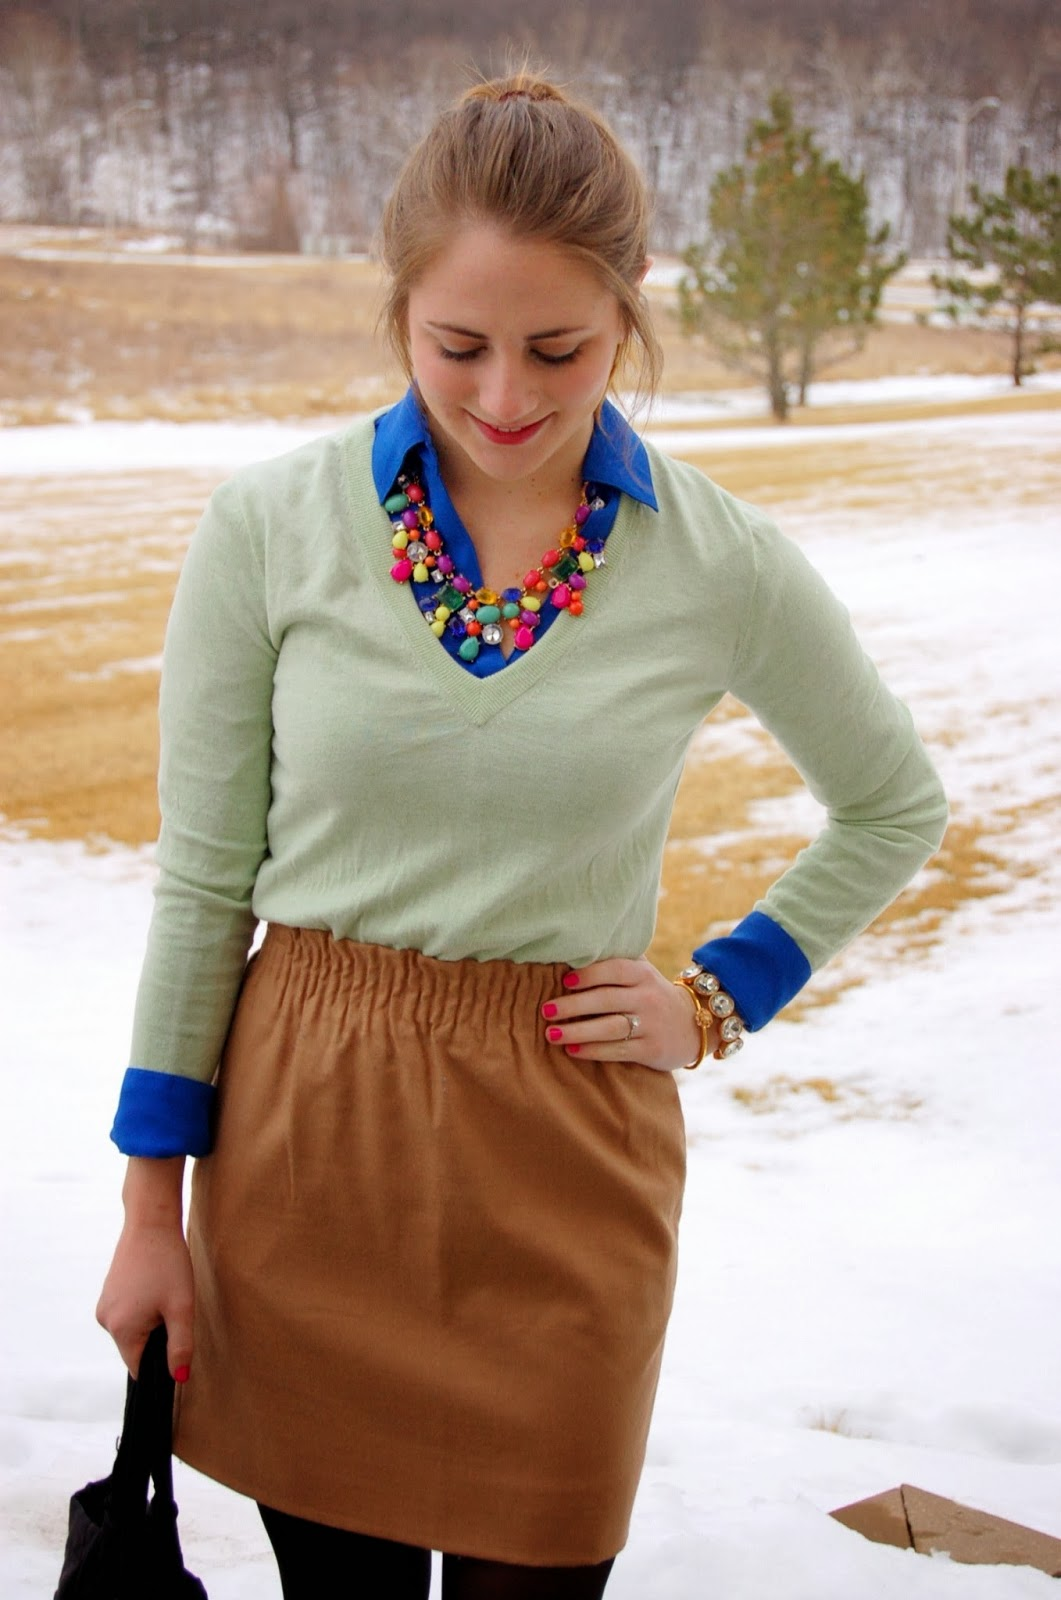 outfits with bright colors for the winter